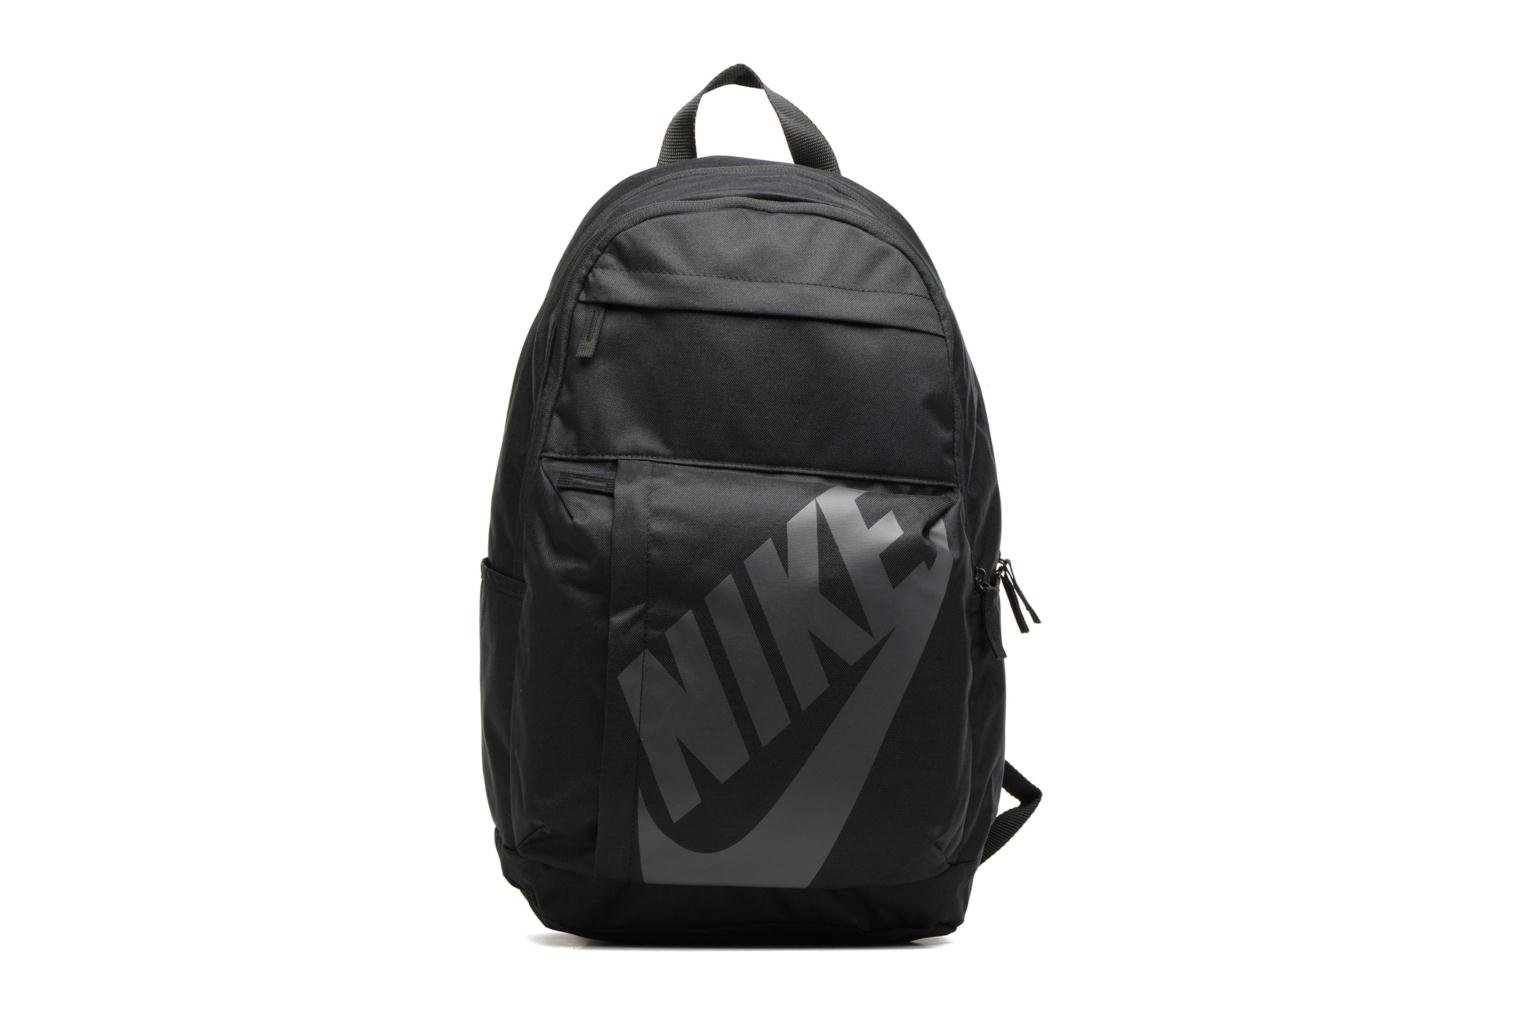 Anthracite Black Nike Elemental Nike Backpack Black Cqq4UwXx